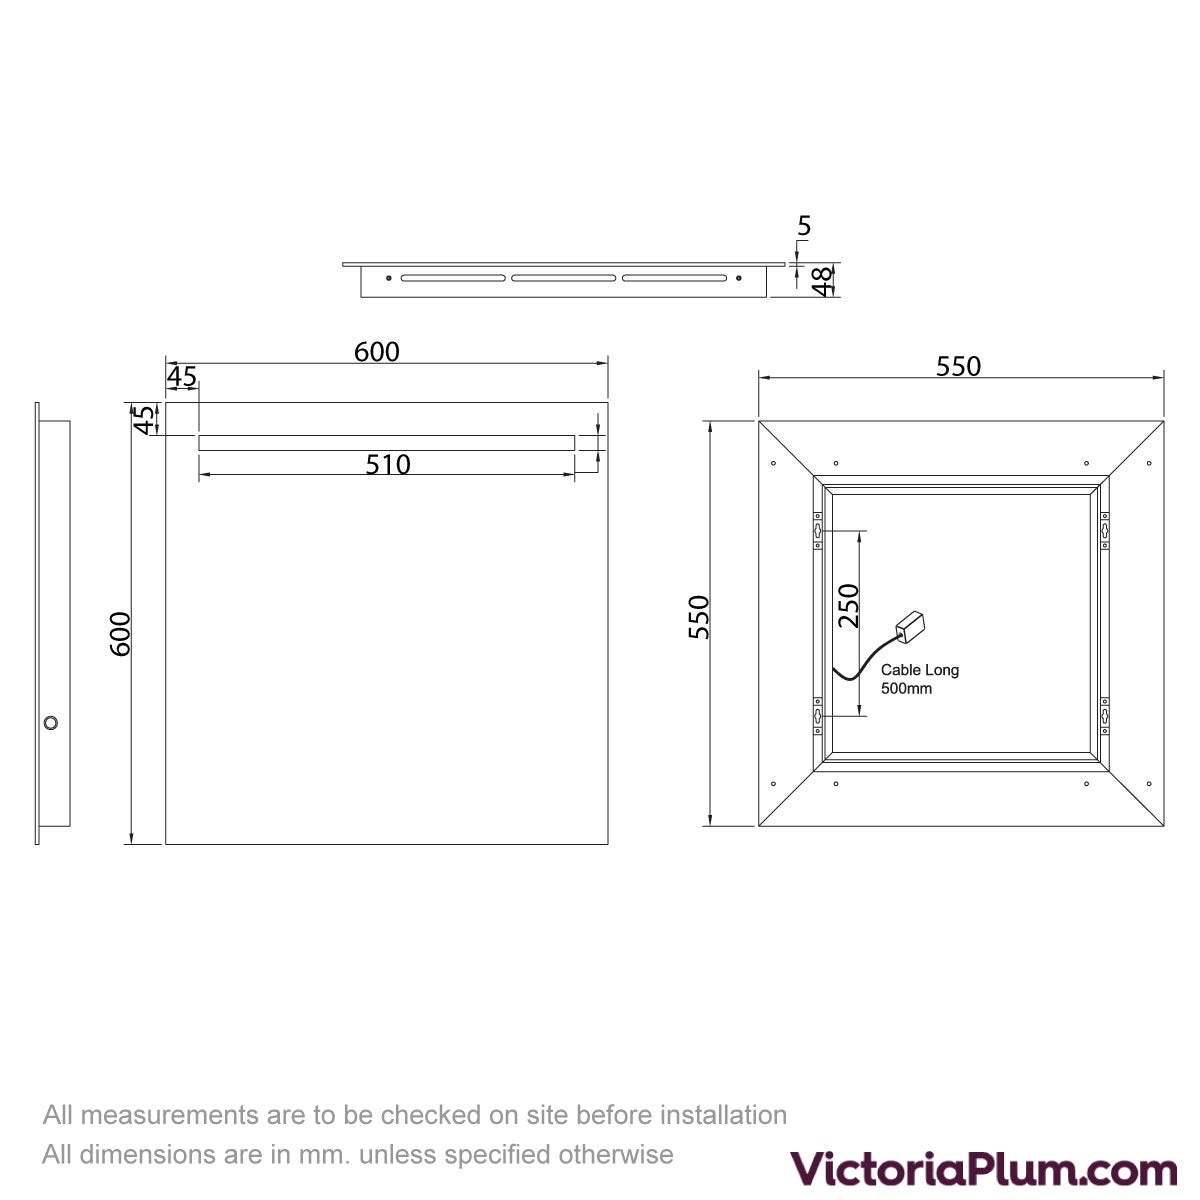 Dimensions for Mode Rossi LED Mirror with under light 600mm